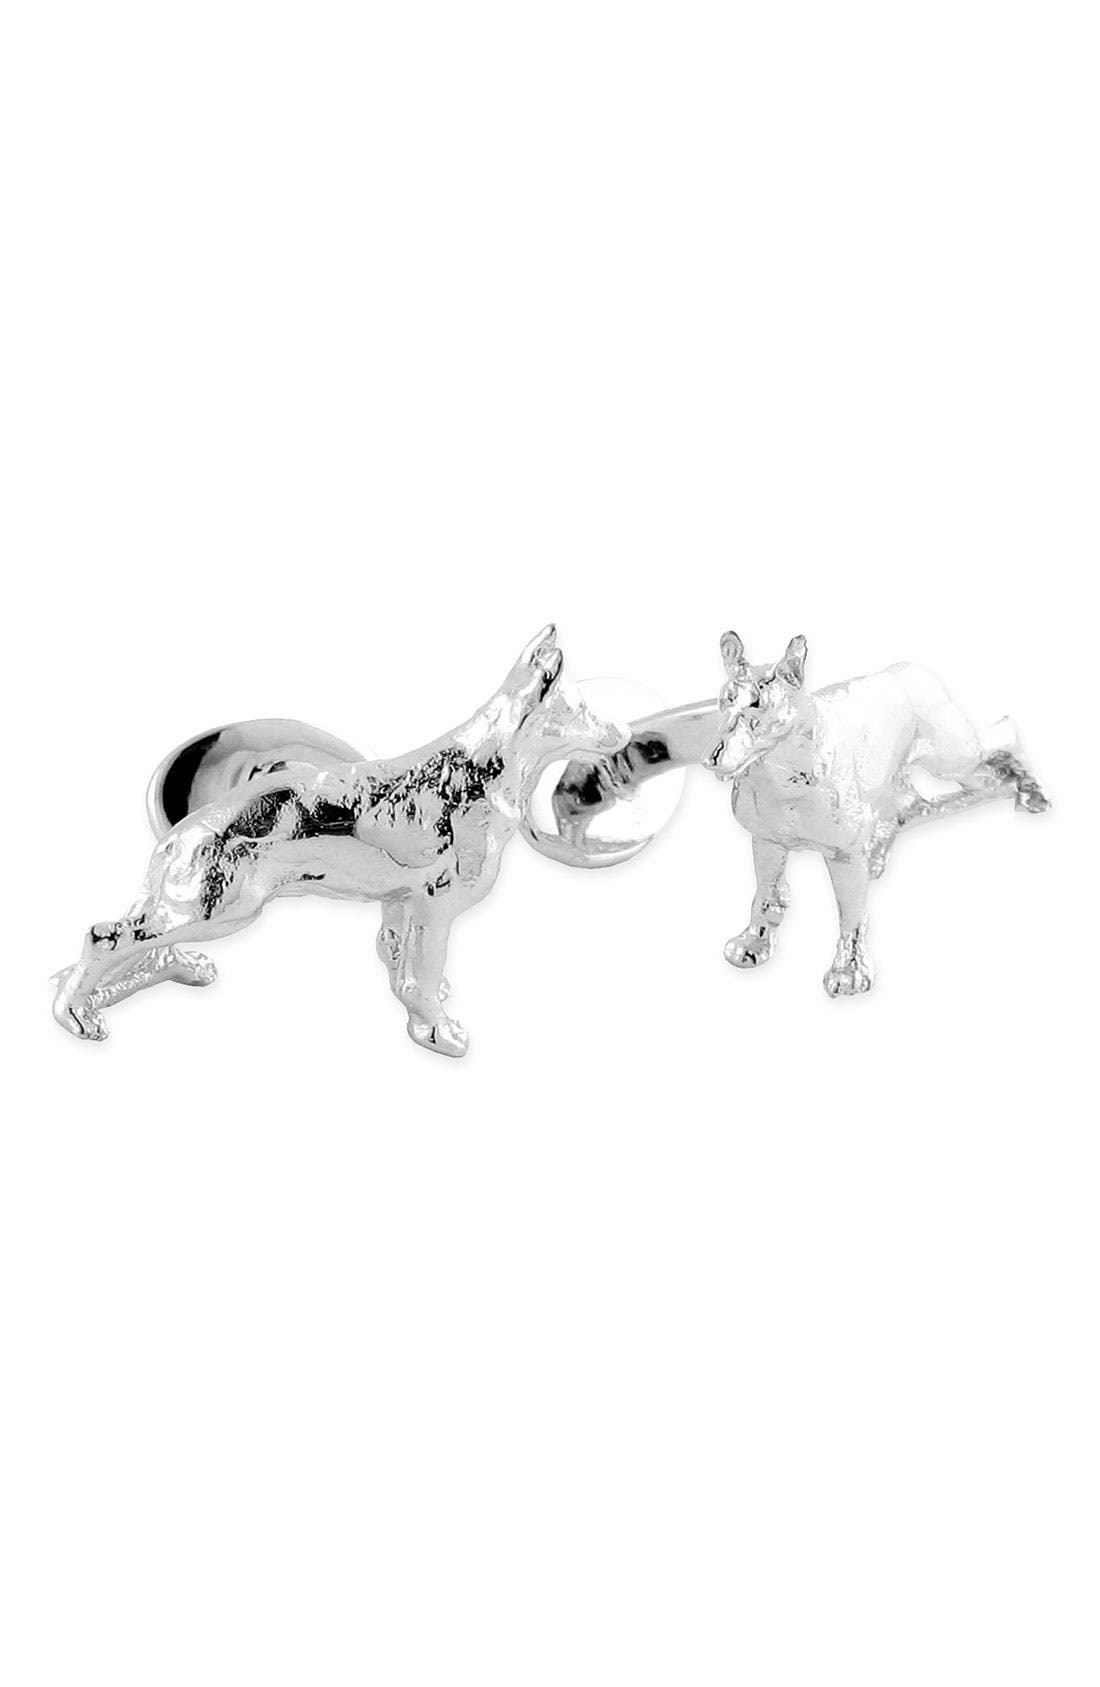 Main Image - David Donahue 'German Shepherd' Sterling Silver Cuff Links